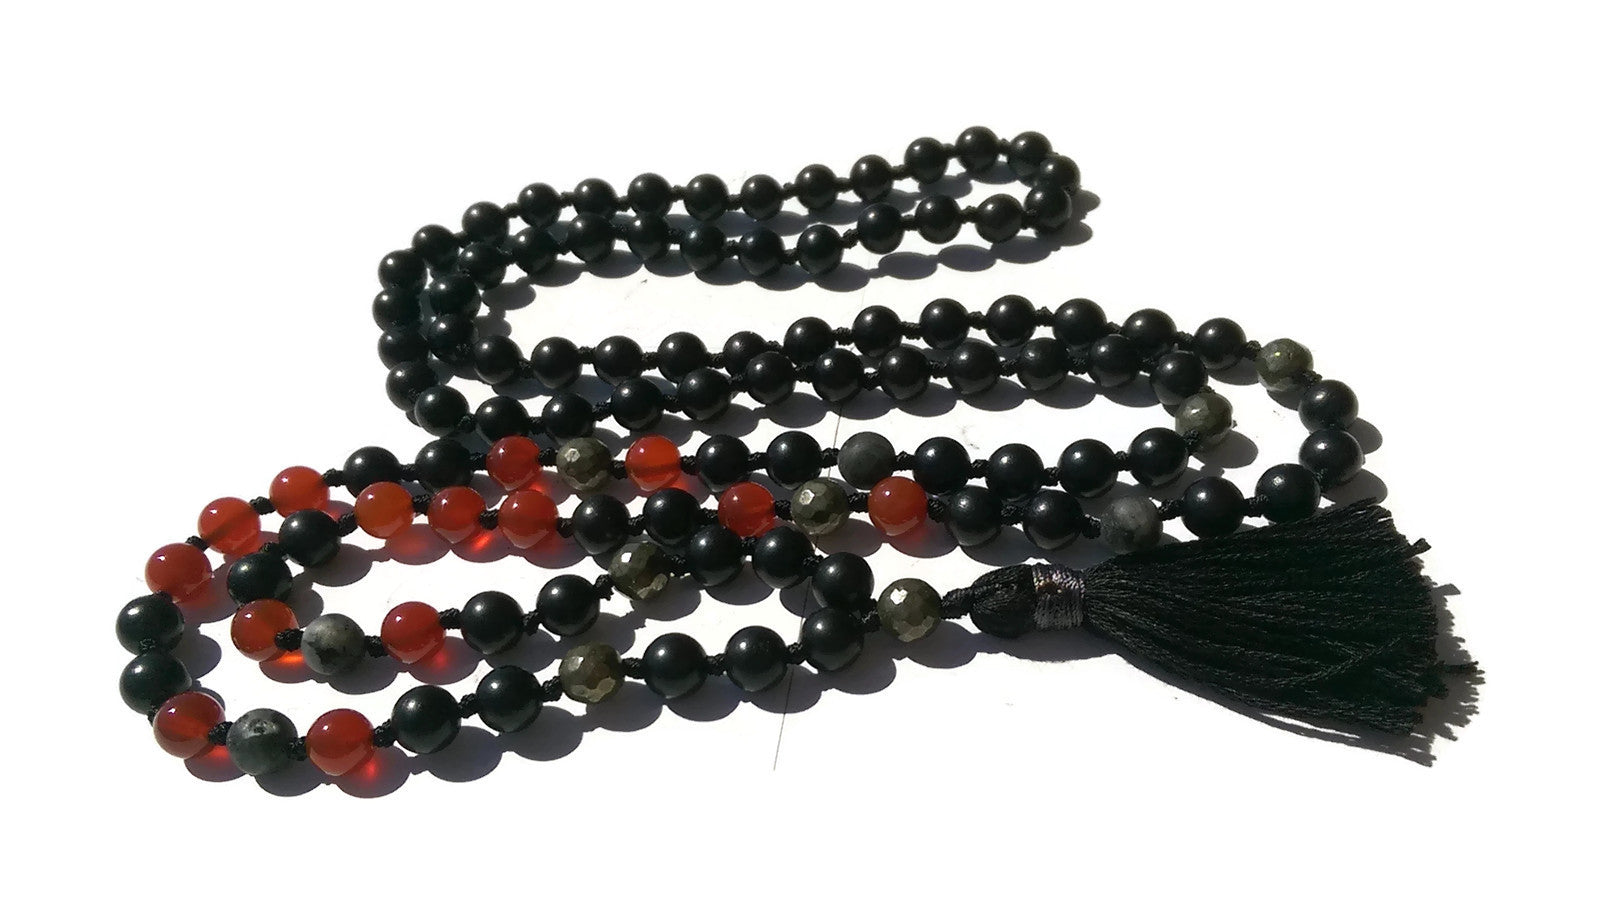 Pure Collection 8mm Ebony Carnelian Labradorite Pyrite Traditional Hand Knotted 108 Bead Meditation Mala Necklace Sacral Chakra Yoga Focus